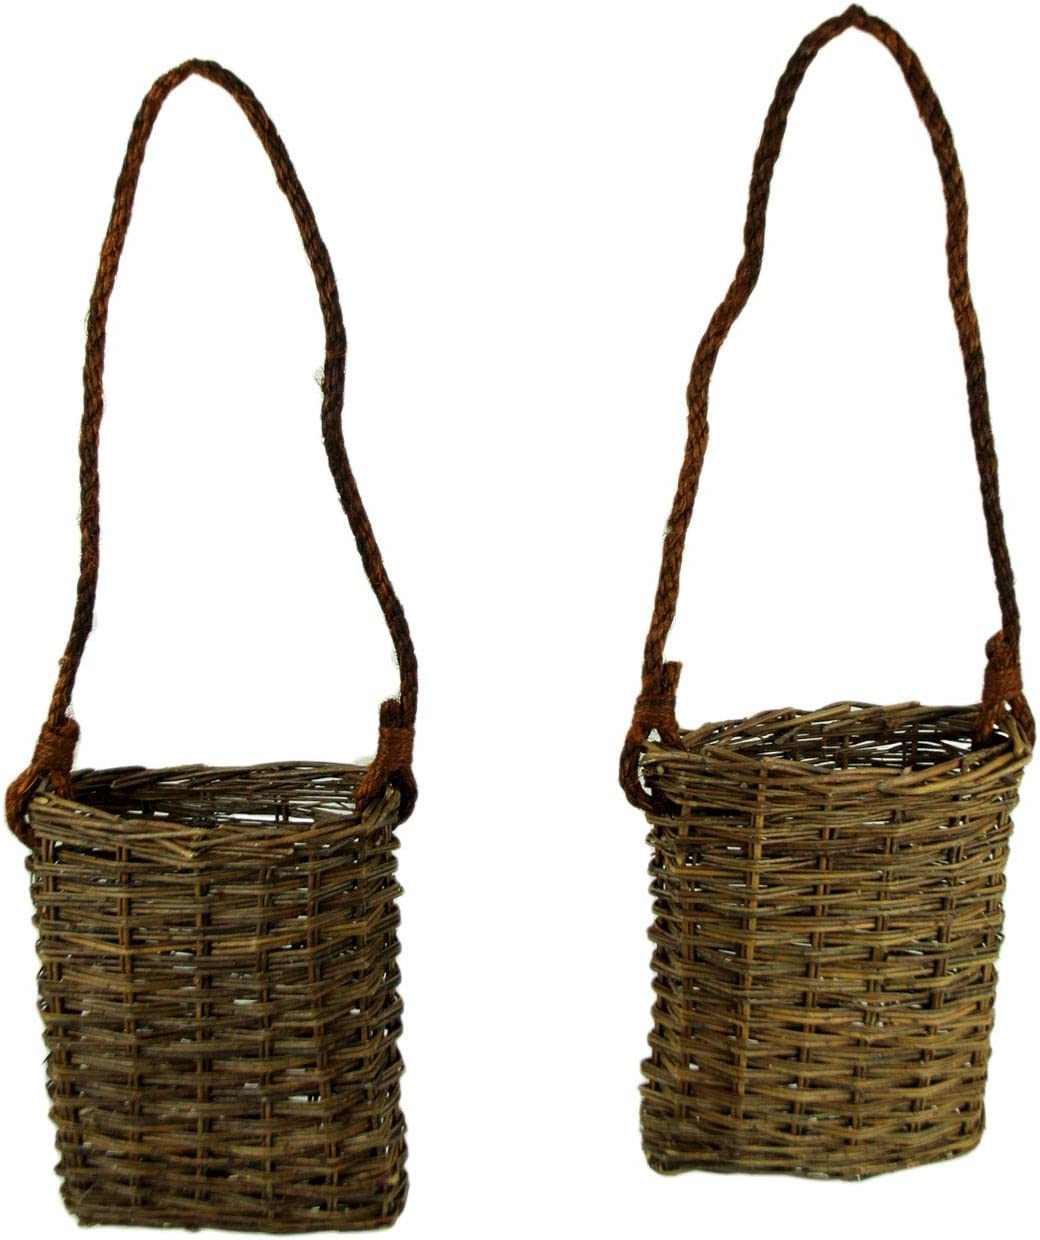 A&B Home Weaved Wicker Hanging Baskets with Rope Hanger Set of 2